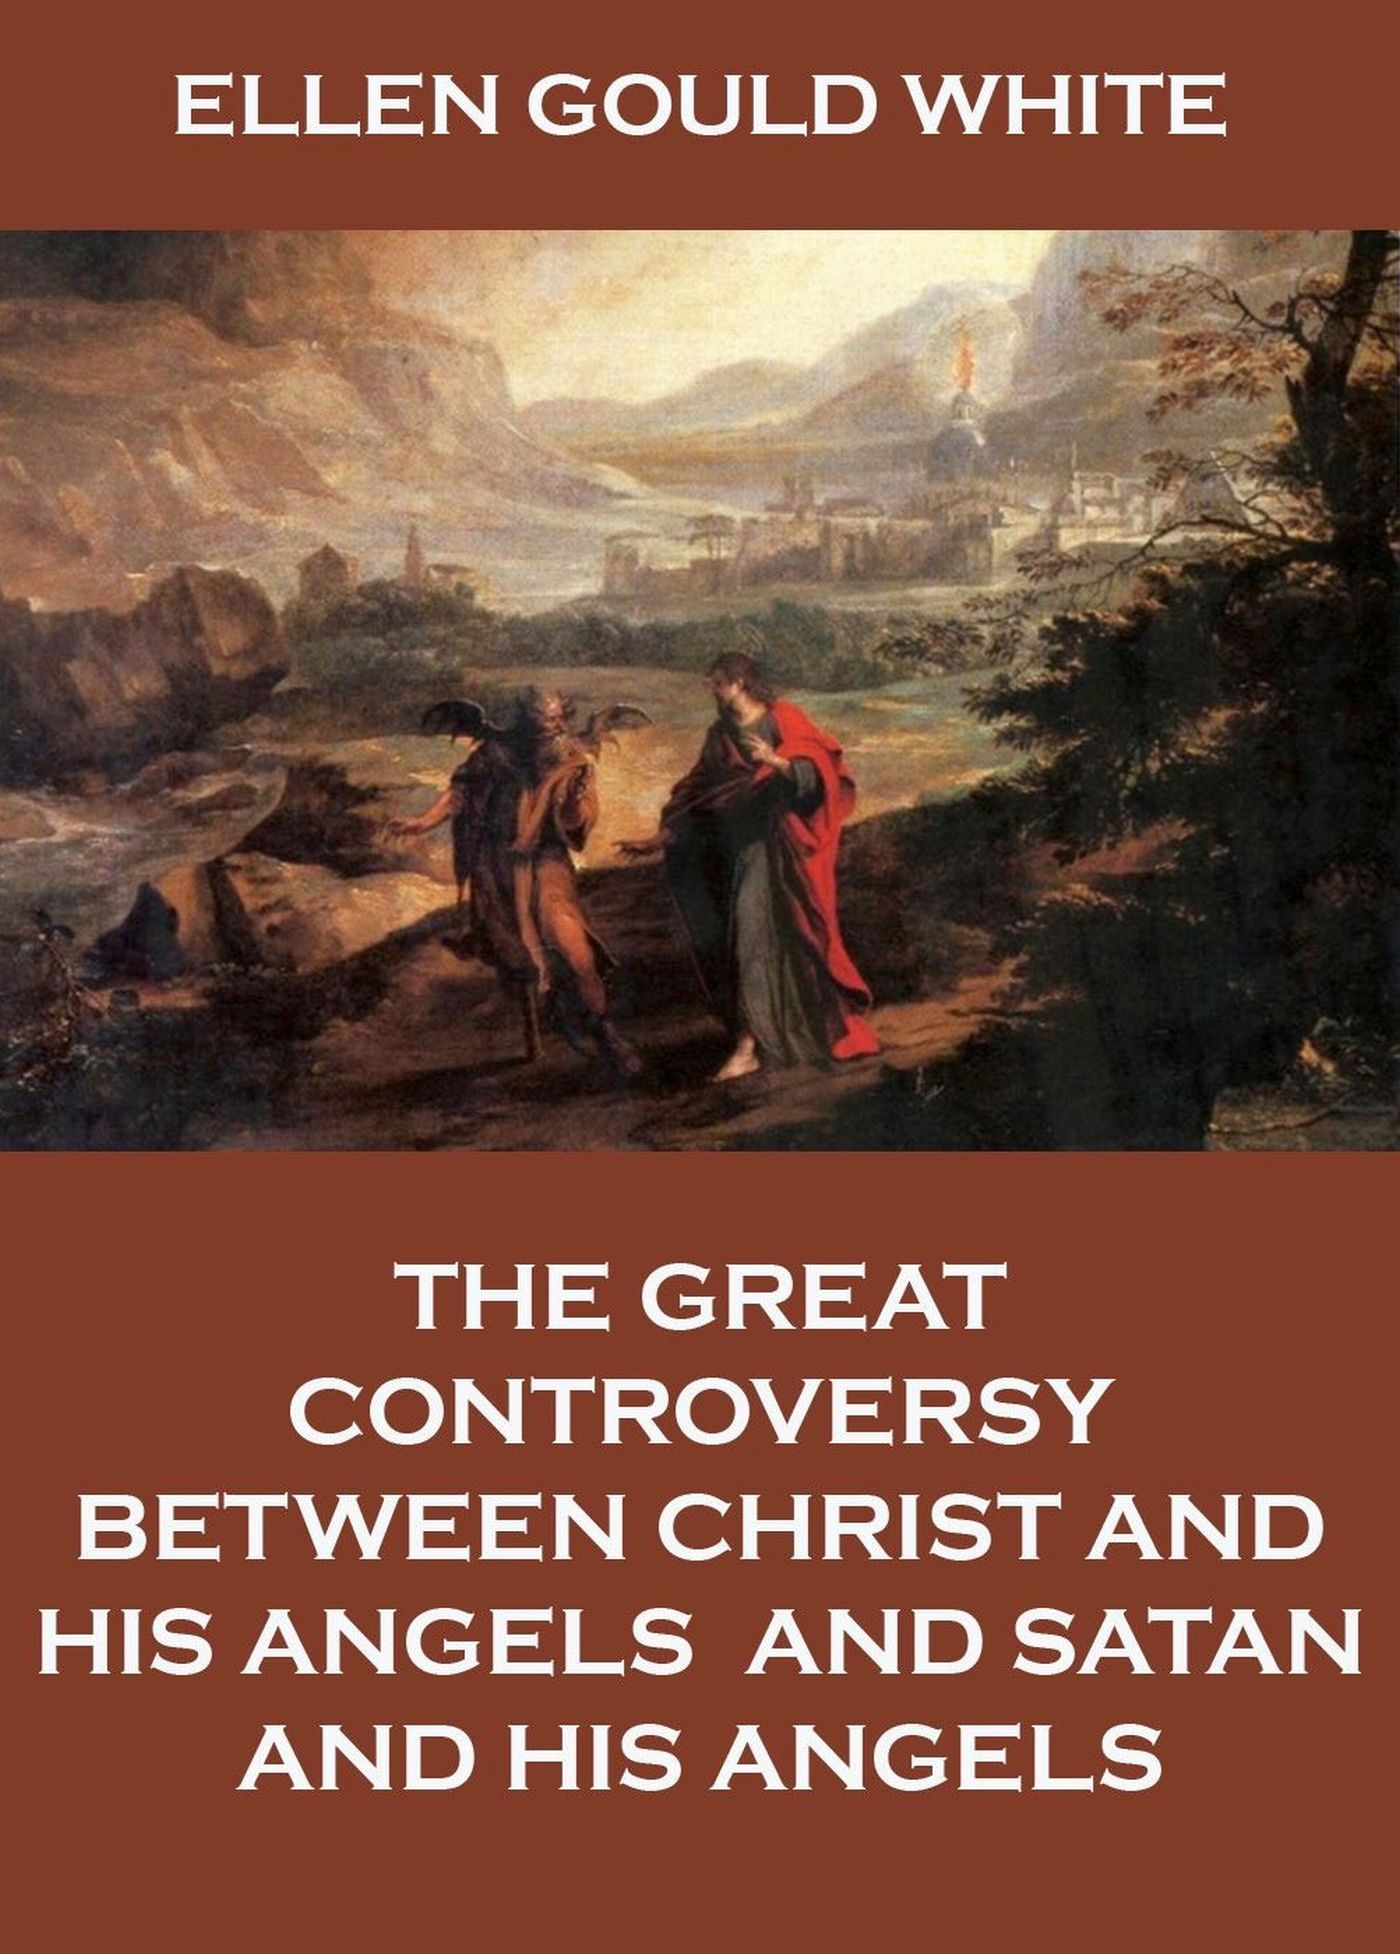 Ellen Gould White The Great Controversy Between Christ And His Angels, And Satan And His Angels janet hardy gould henry viii and his six wives isbn 9780194786904